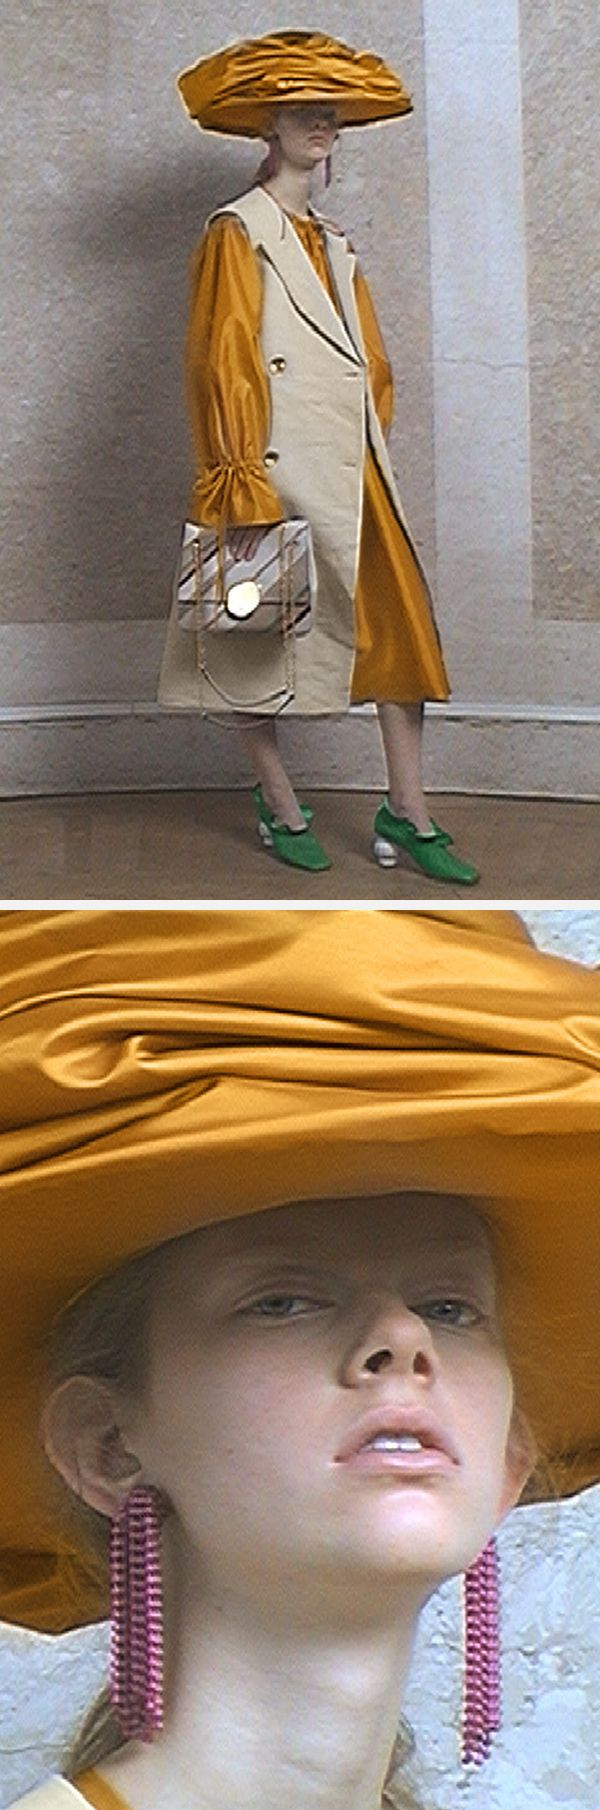 Archetypes of Englishness inspire the Mulberry SS18 collection. Cherry Dress in Saffron Silk Taffeta, Draped Pump in Earth Yellow Satin, Small Amberley Satchel Bag in Earth Yellow Smooth Calf Leather, Face Stone Earrings in Yellow Brass Metal with Enamel Swarovski Pearls.